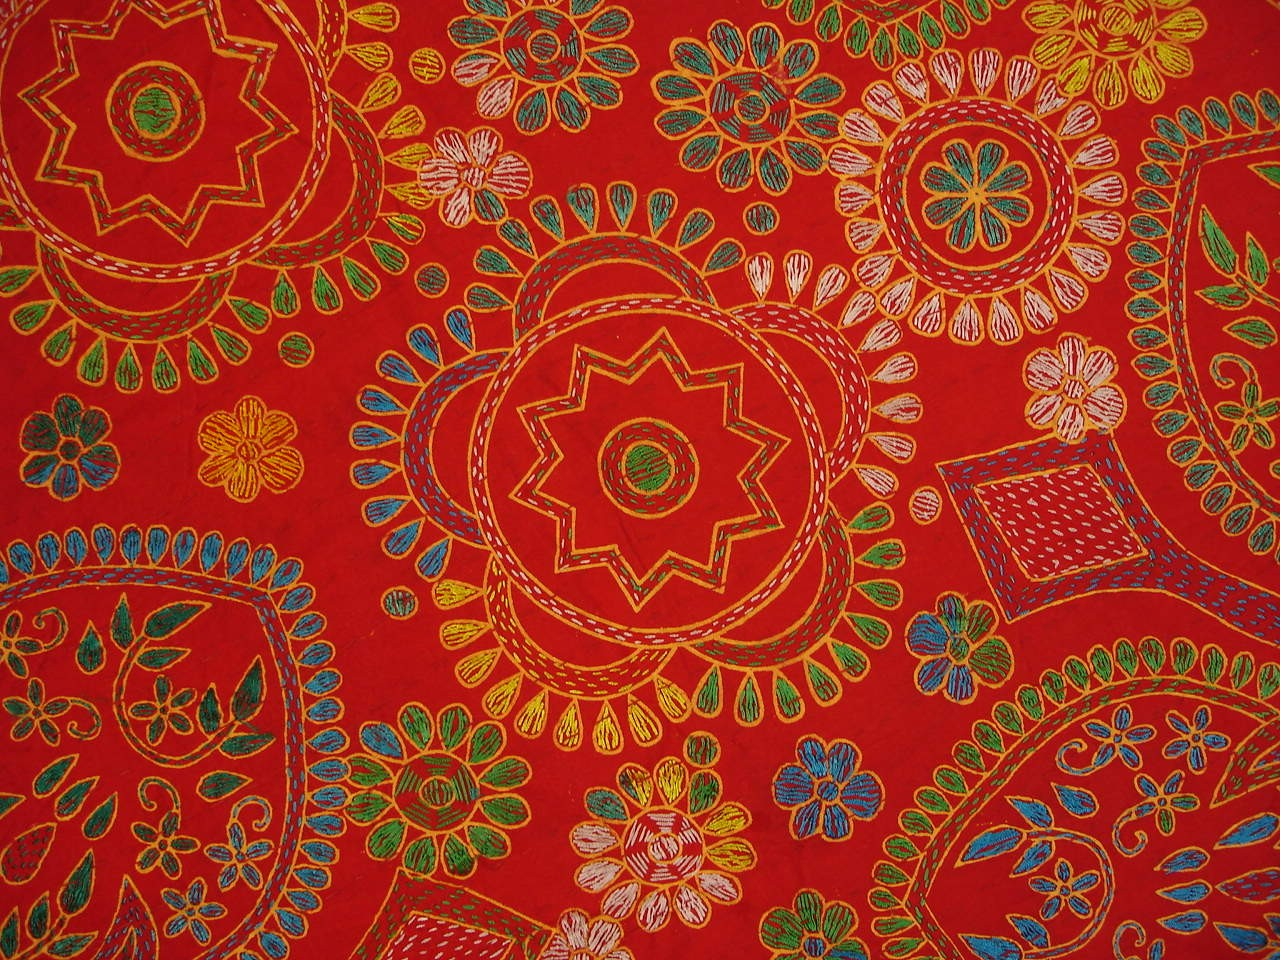 Hand-Stitched-Needlepoint-Embroidered-Cotton-Quilt-by-AlamsTrading-wallpaper-wp3406532